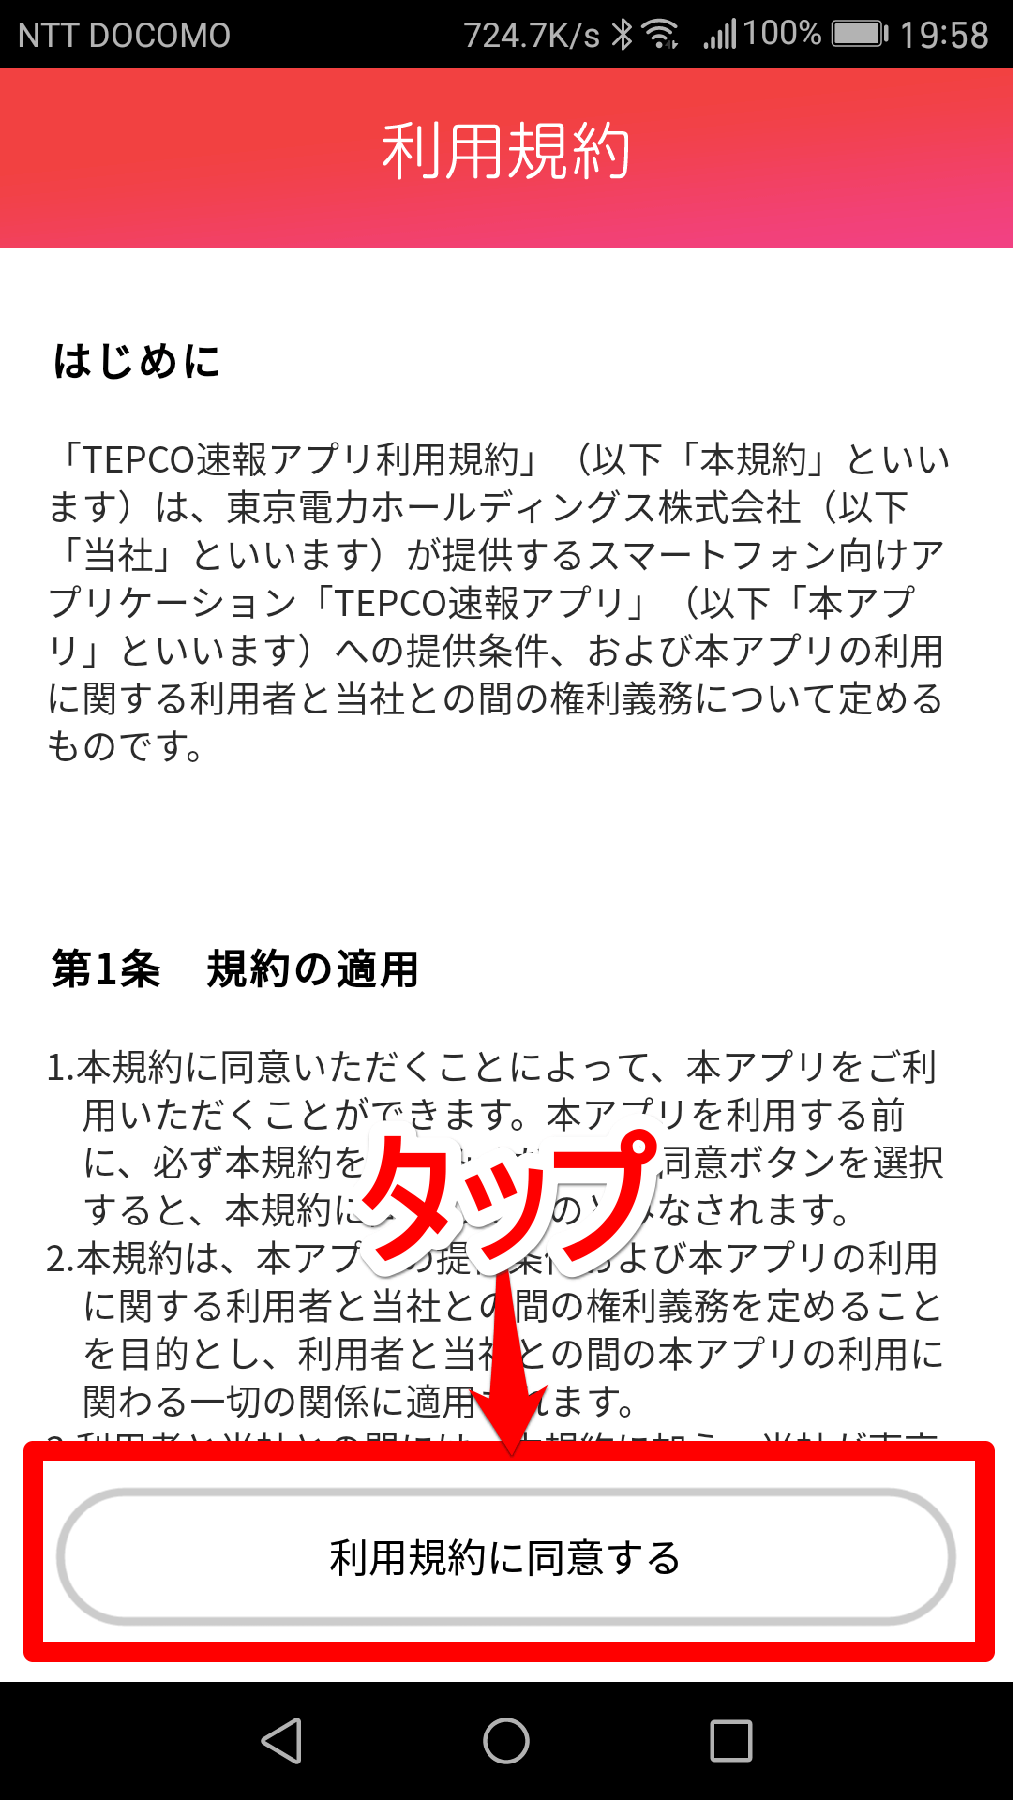 [TEPCO速報]アプリの利用規約同意画面